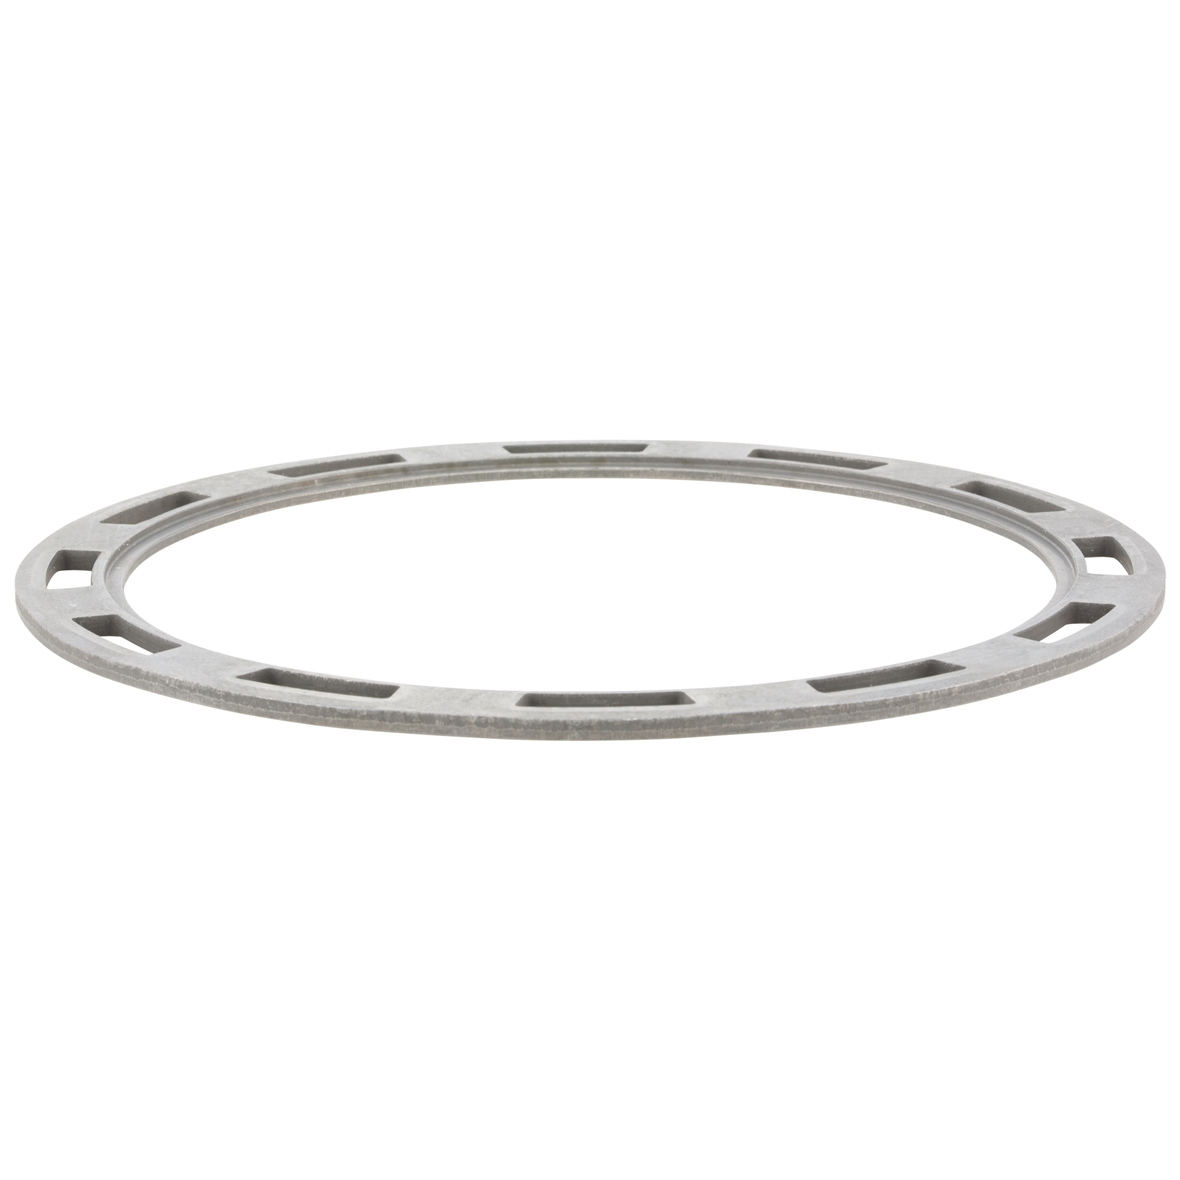 Product image for 'Mounting Ring PIAGGIO clutch discsTitle'